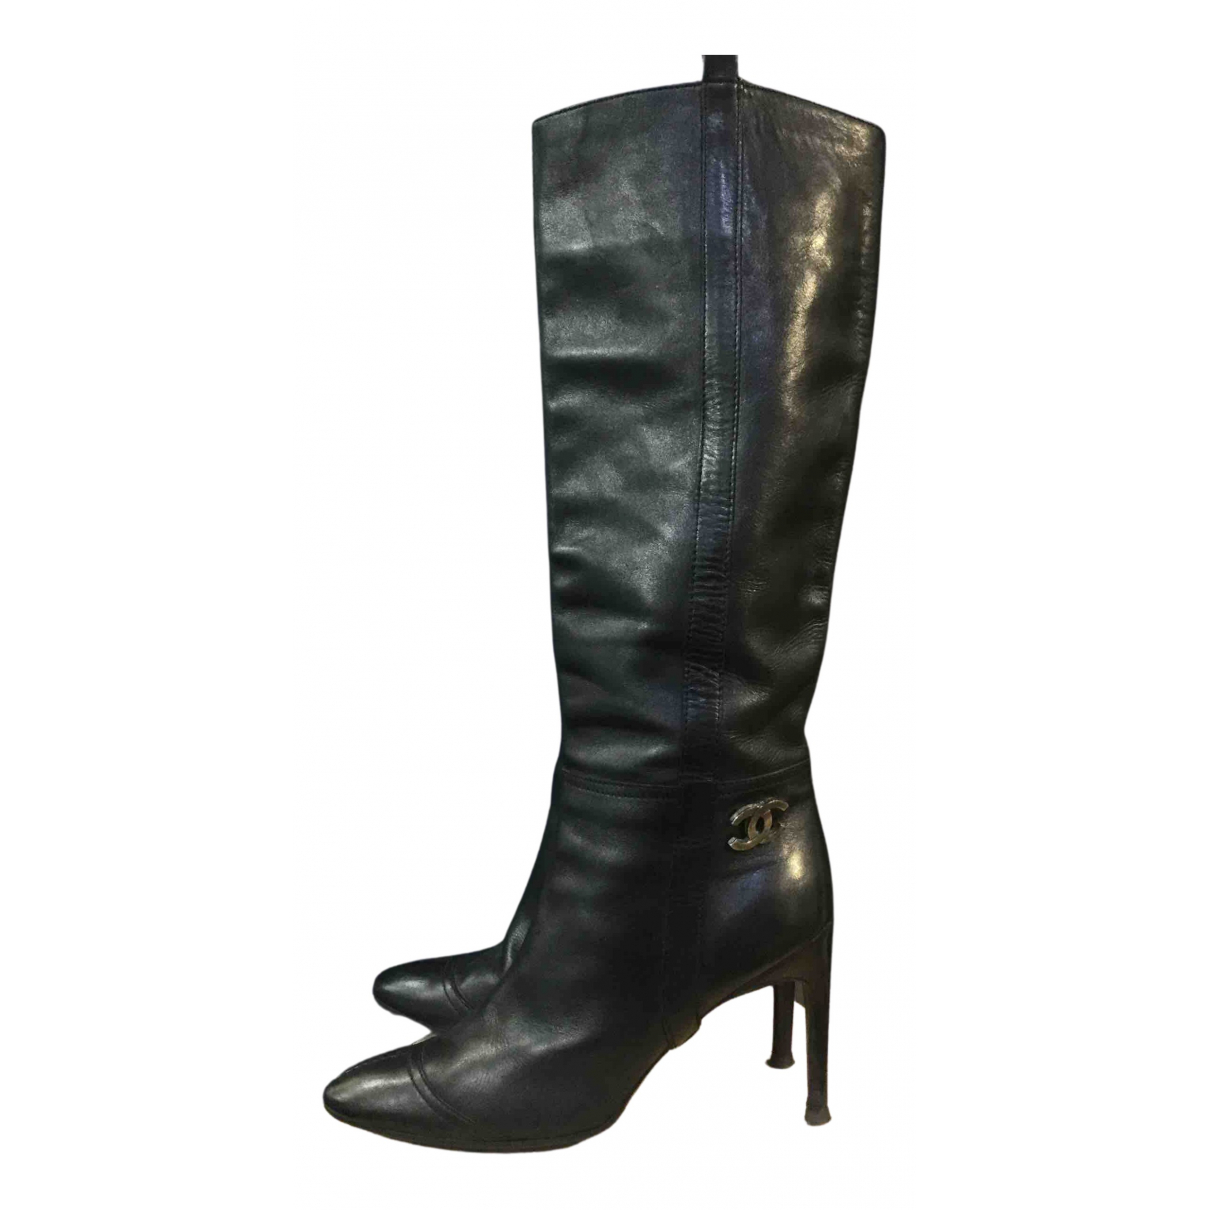 Chanel N Black Leather Boots for Women 37.5 EU